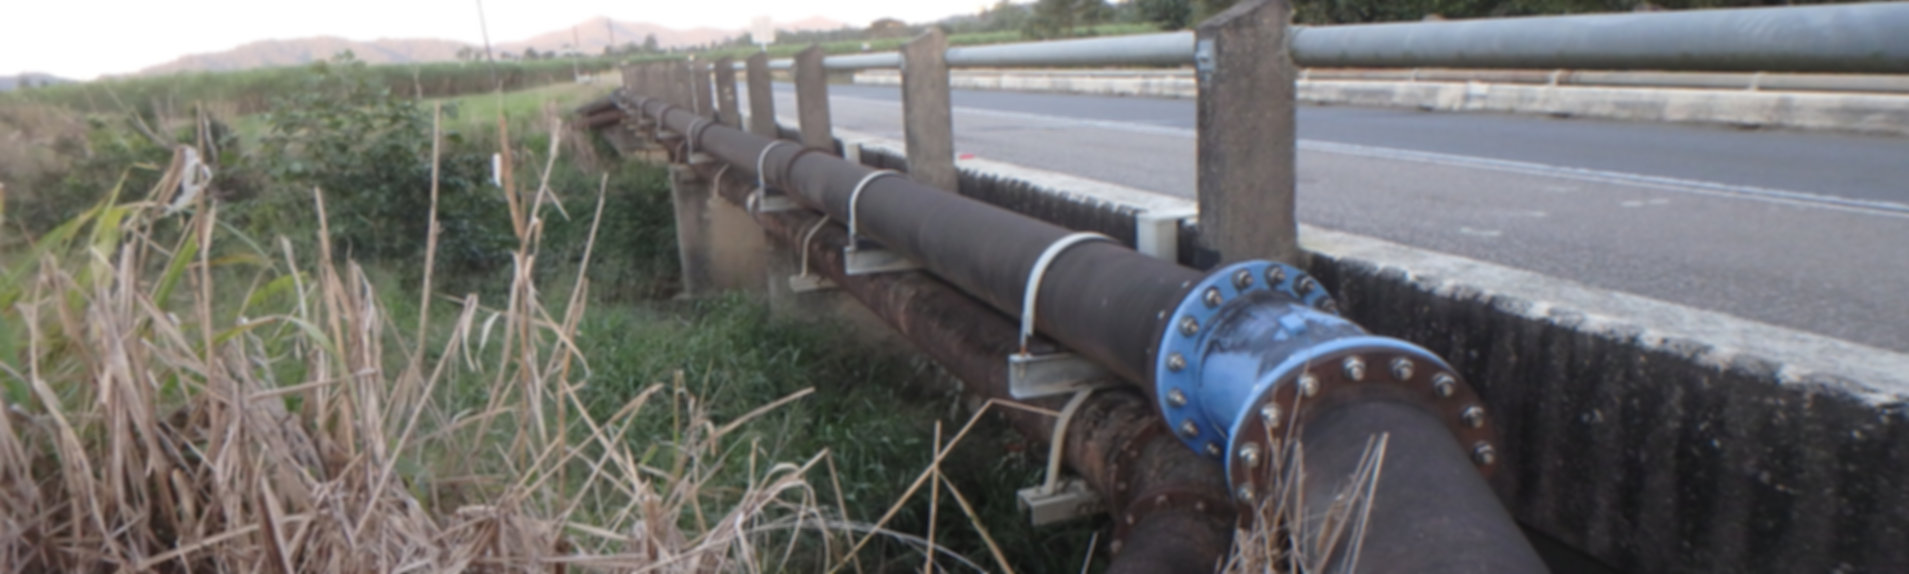 condition assessment of ductile iron pipe